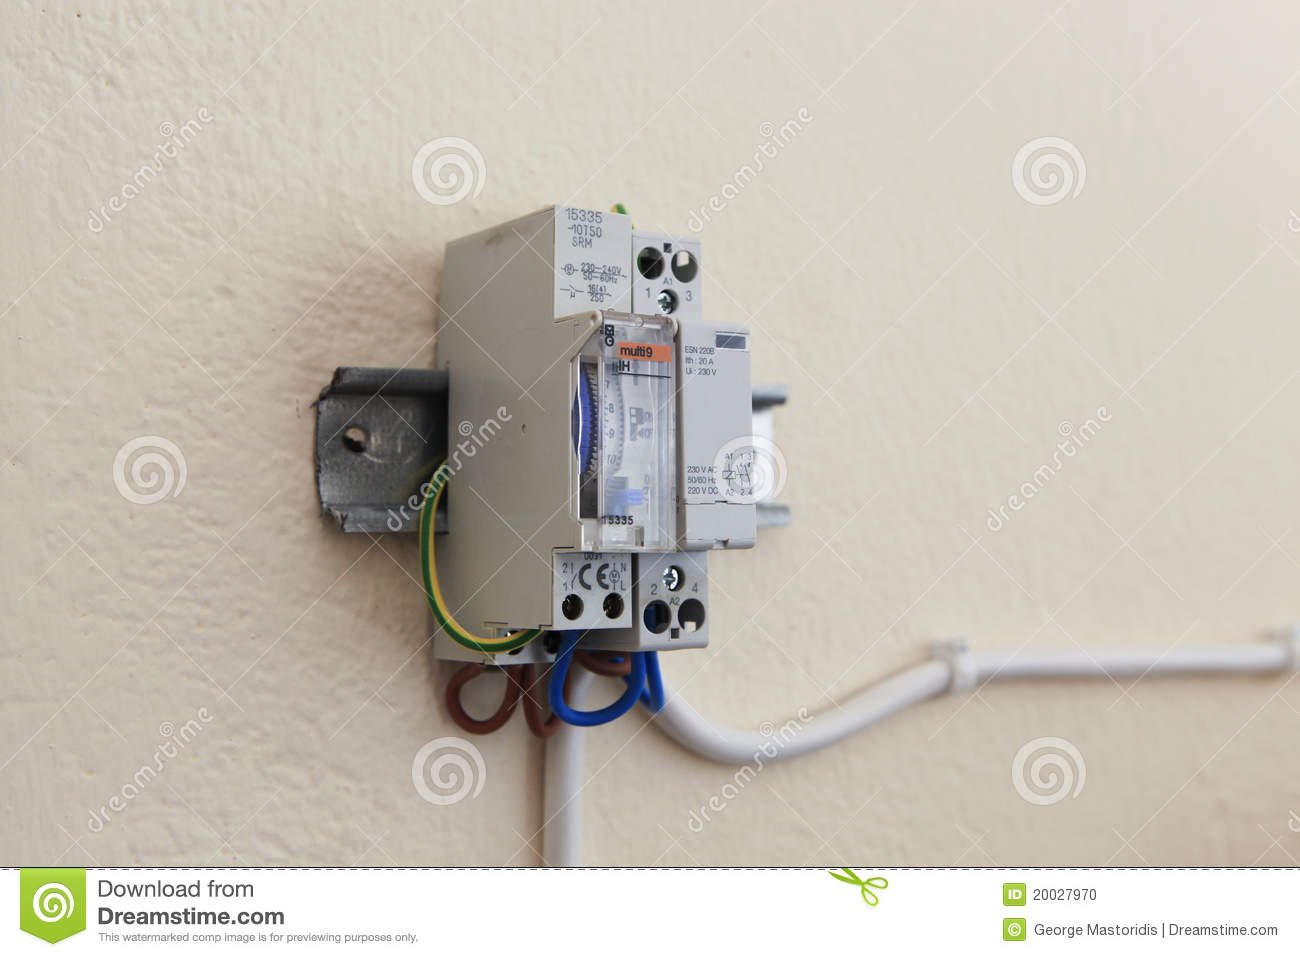 Fuse box timer switch wiring diagram images